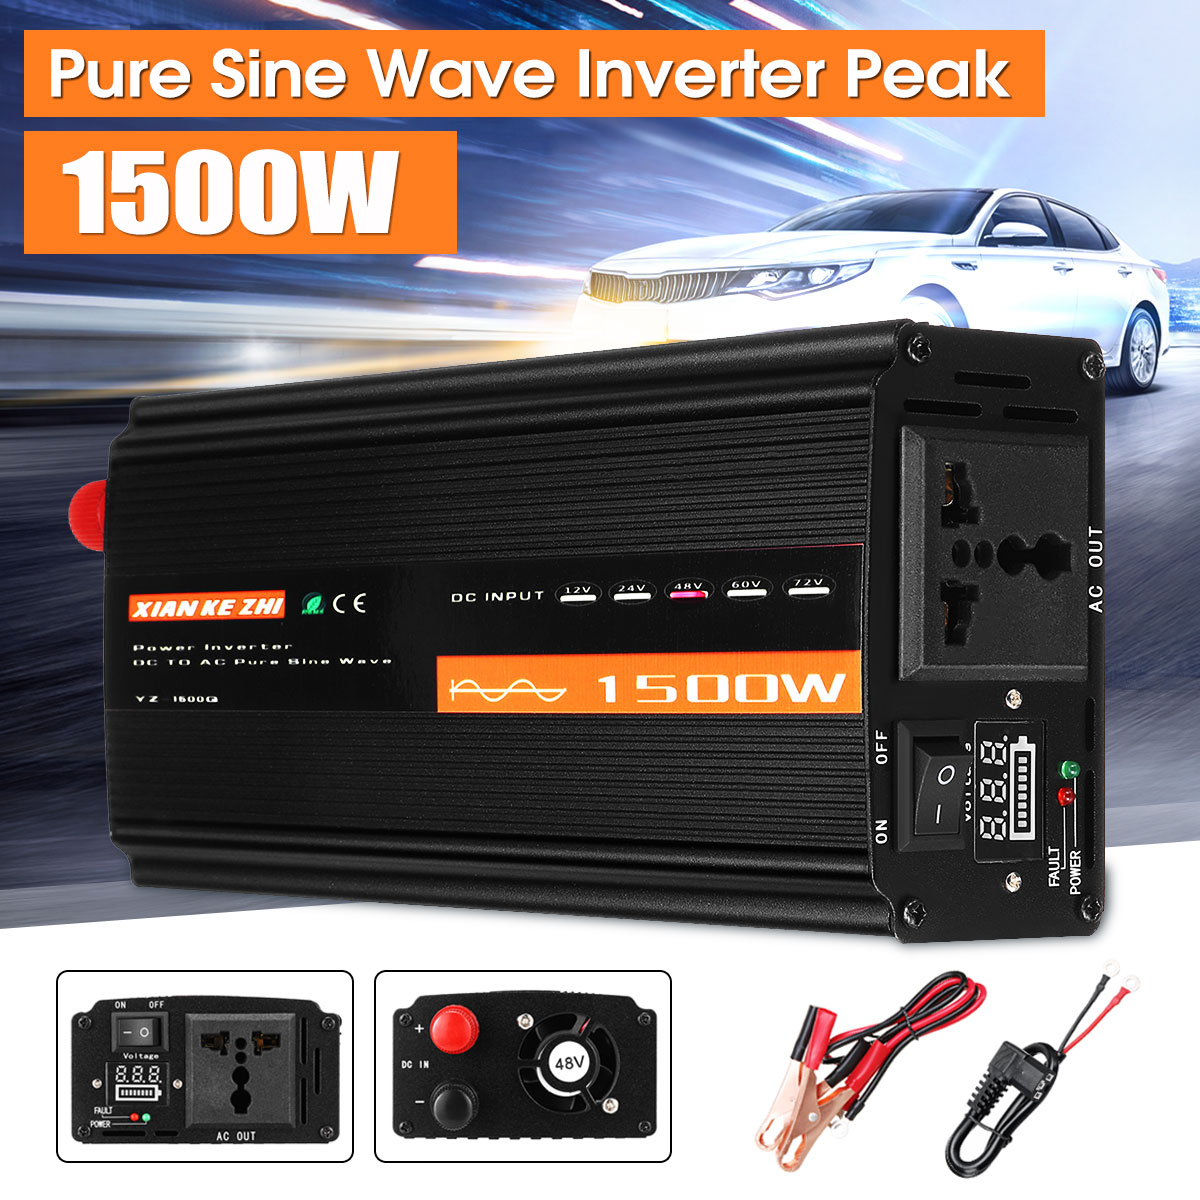 <font><b>Inverter</b></font> 12V 220V <font><b>1500W</b></font> Solar Pure Sine Wave DC12V/24V/48V To AC220V 50HZ Power Converter Booster For Car <font><b>Inverter</b></font> Household DIY image